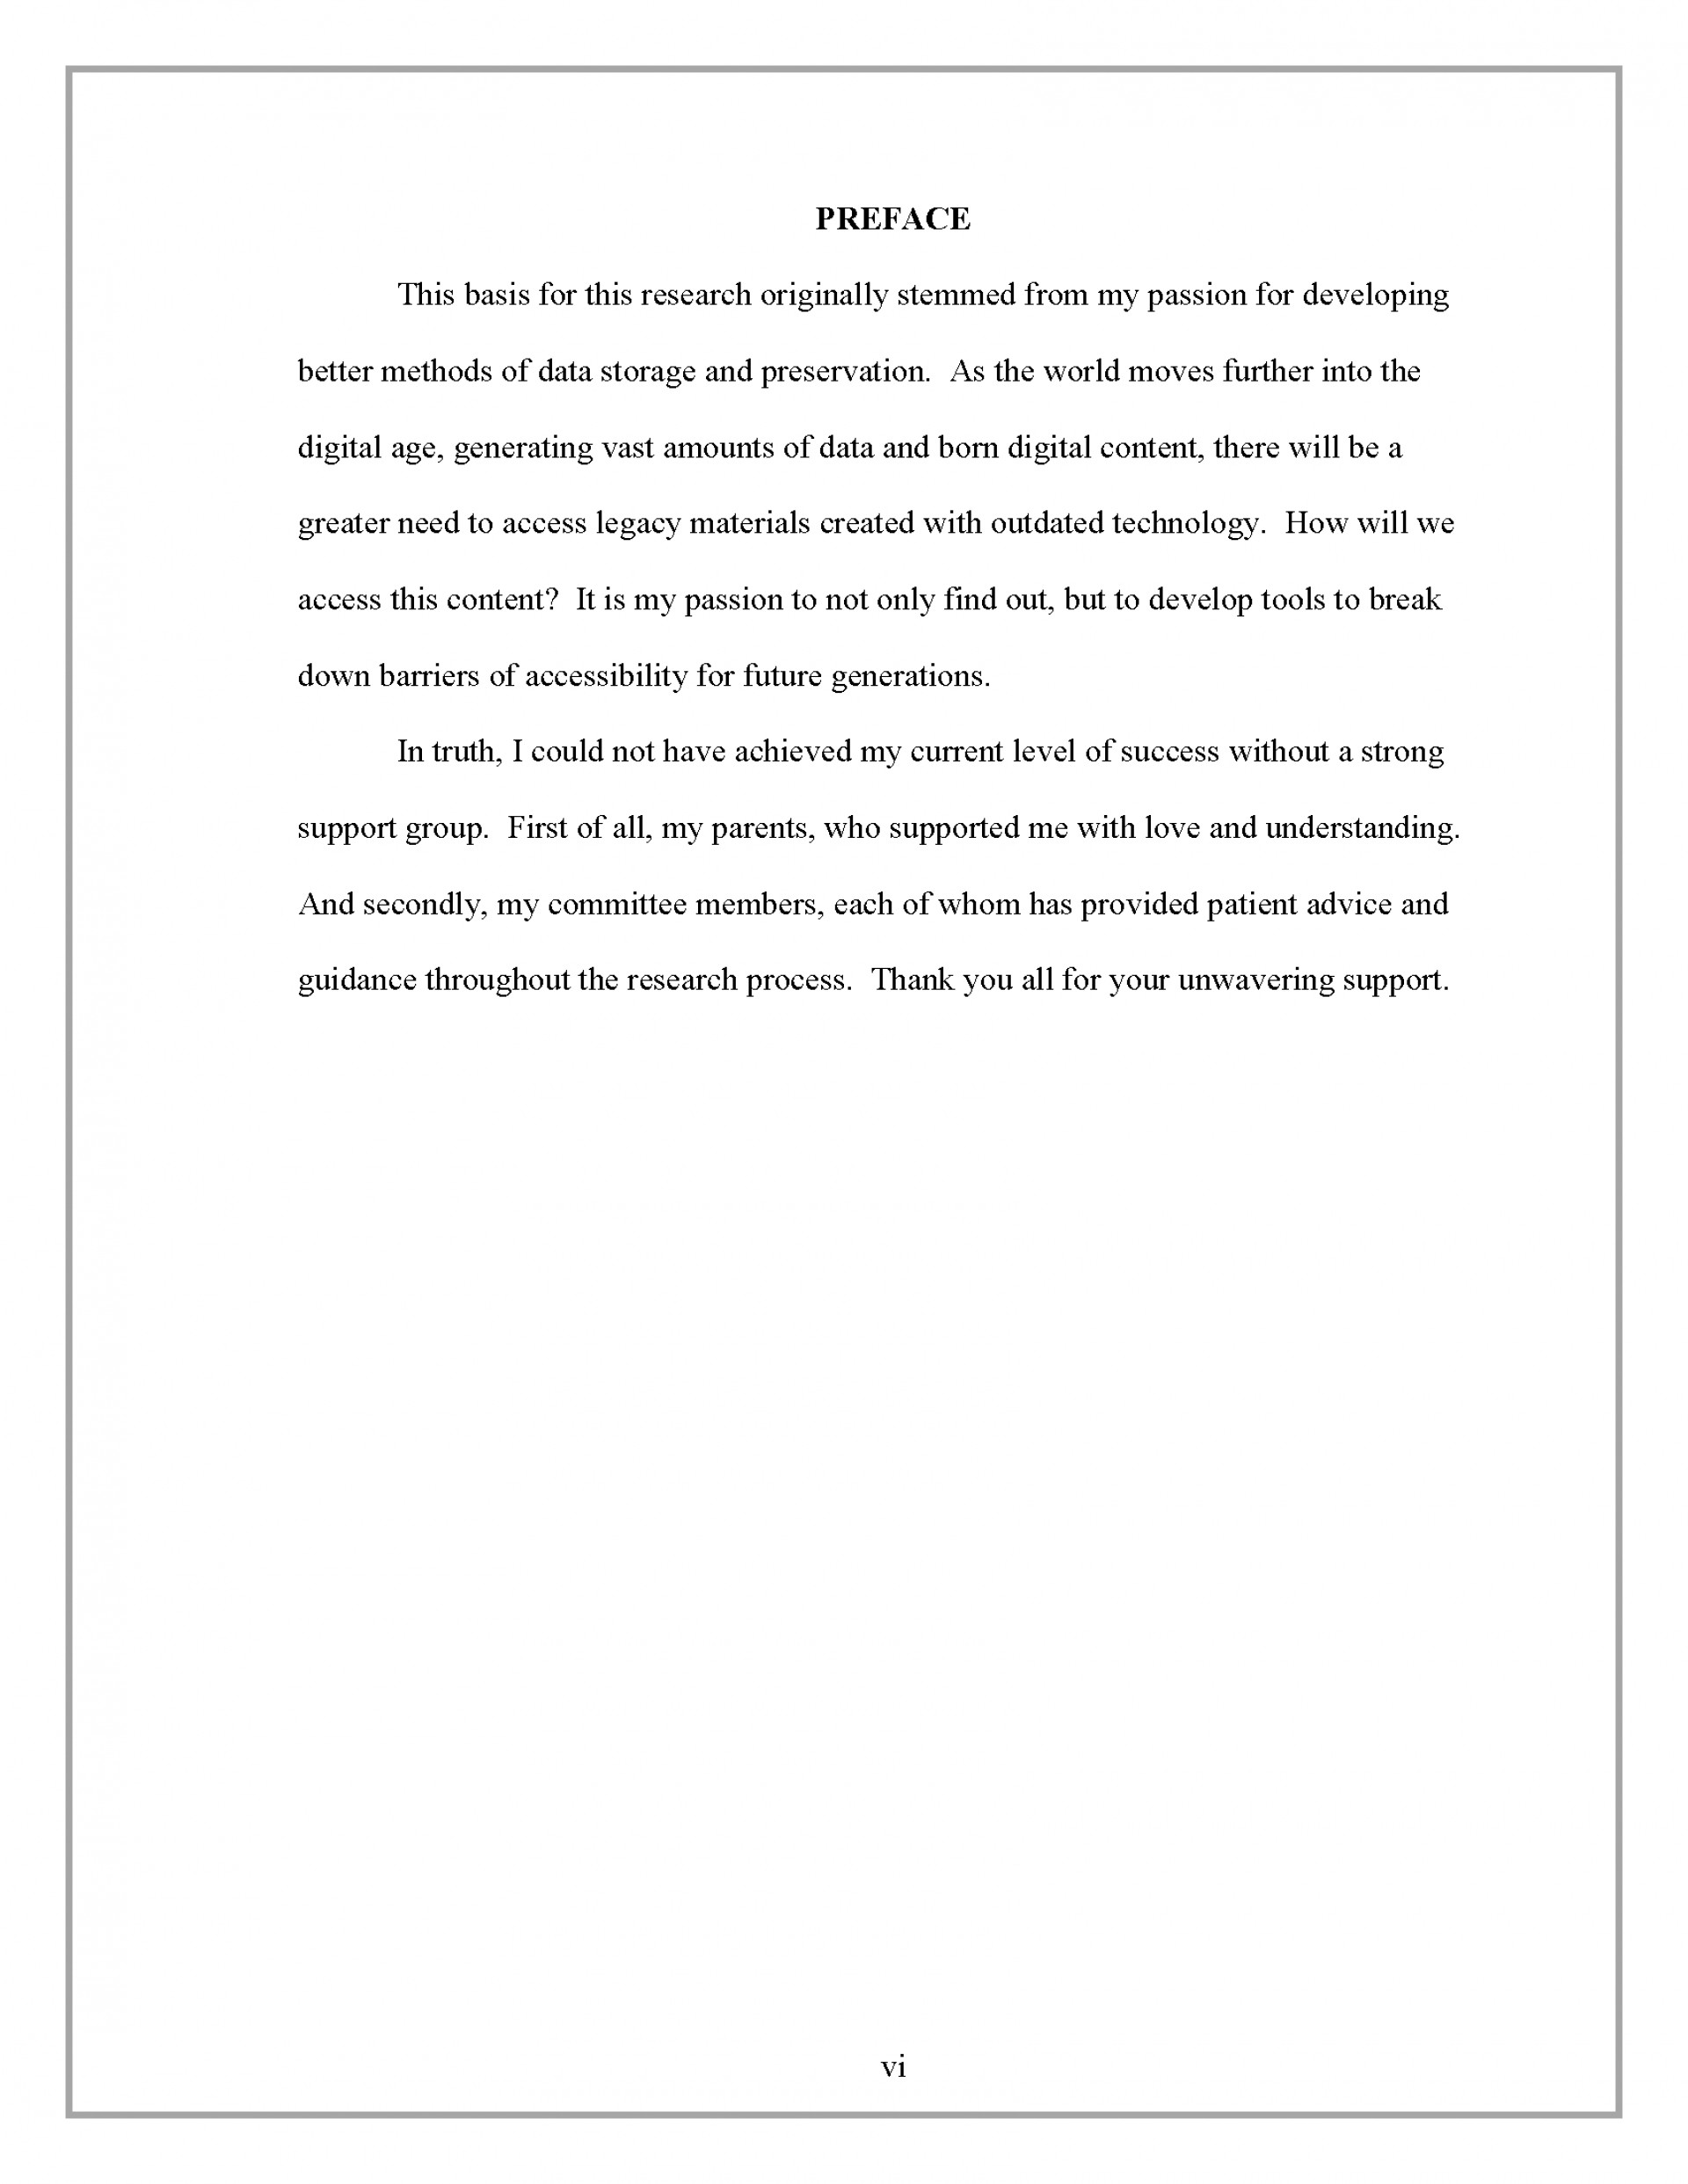 011 Research Paper Preface Border How To Write Thesis For Fantastic A History 1920